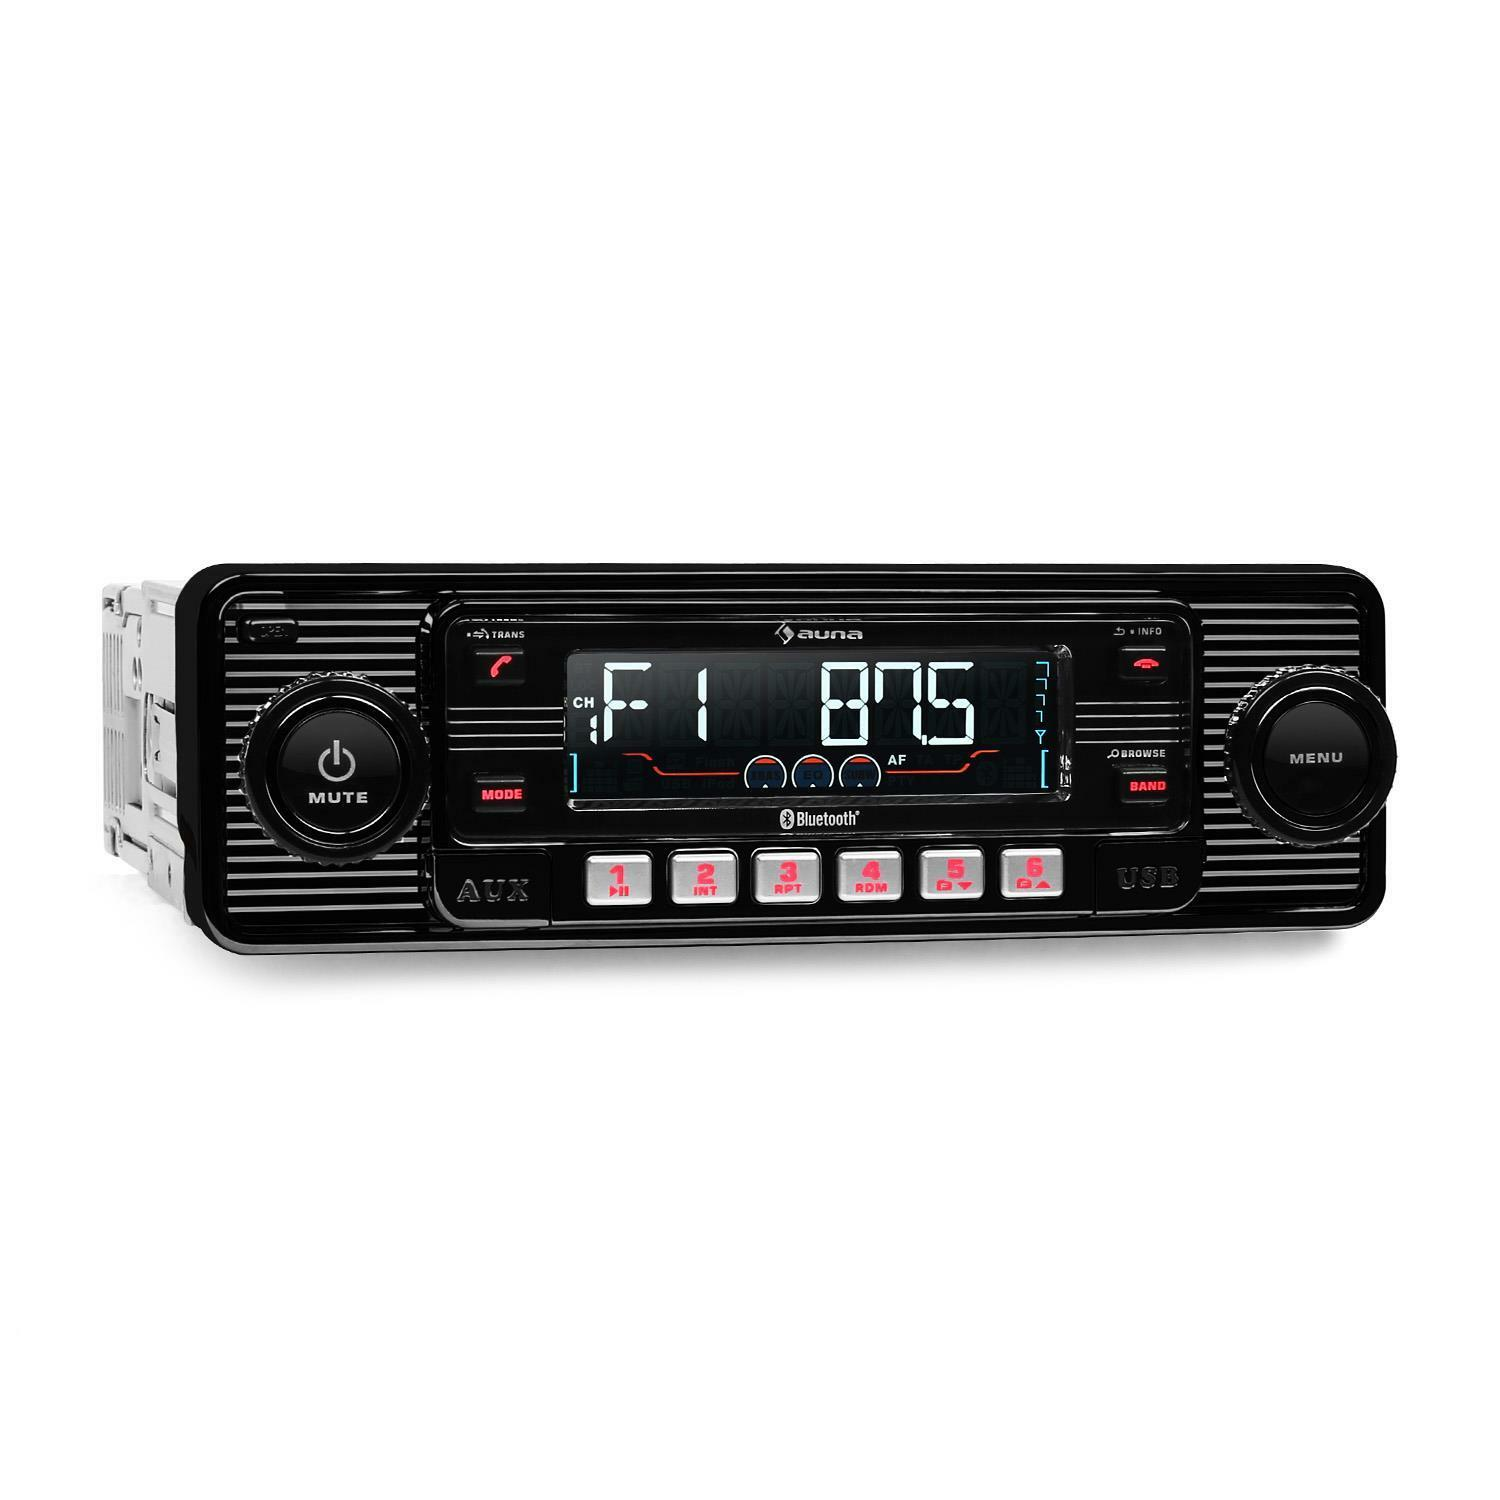 autoradio bluetooth look retro auna lecteur cd mp3 usb sd radio fm rds streaming eur 125 99. Black Bedroom Furniture Sets. Home Design Ideas